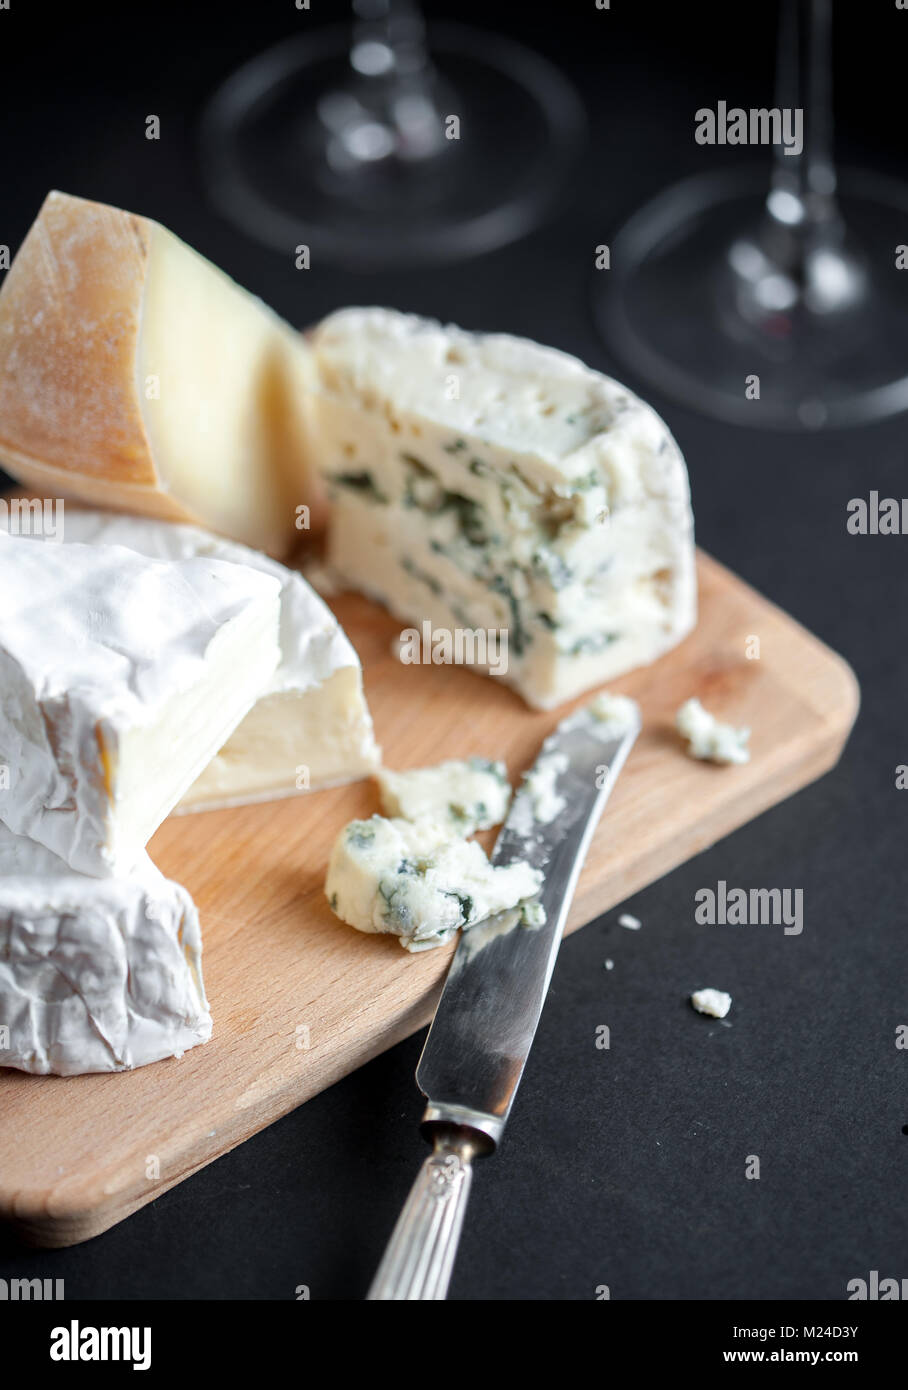 Assortment of cheeses  on a wooden plate with vintage silver knife and two wine glasses. Vertical. Macro image. - Stock Image